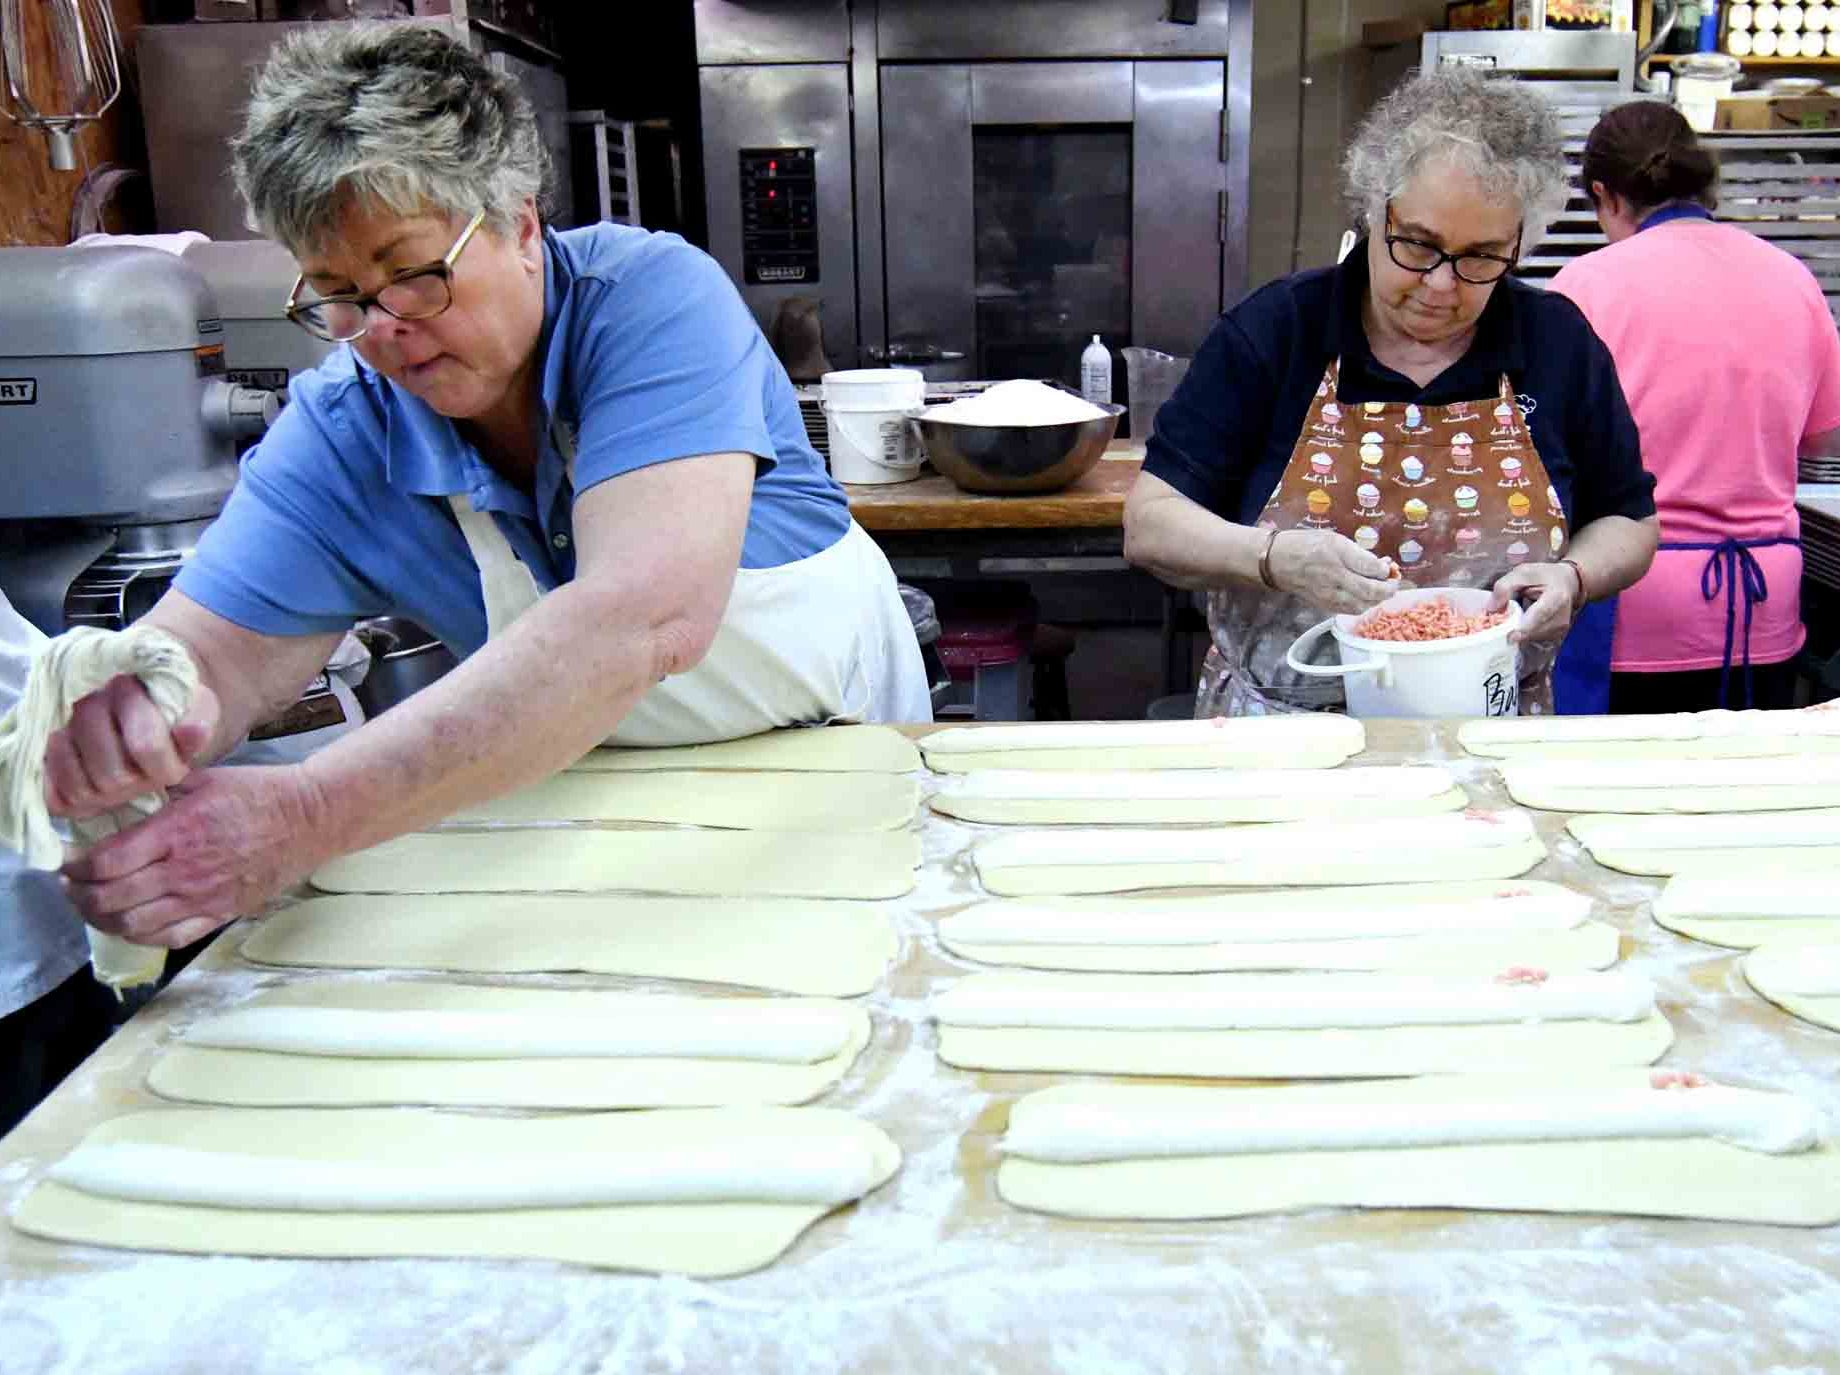 Jade Rock, right, and Jody Lopez, left, start the process of making king cakes at Jody's Bakery in Hattiesburg. The bakery provides around 15 different flavors of king cakes. They can be found at Keith's Superstore, Strick's BBQ and Pier 98.